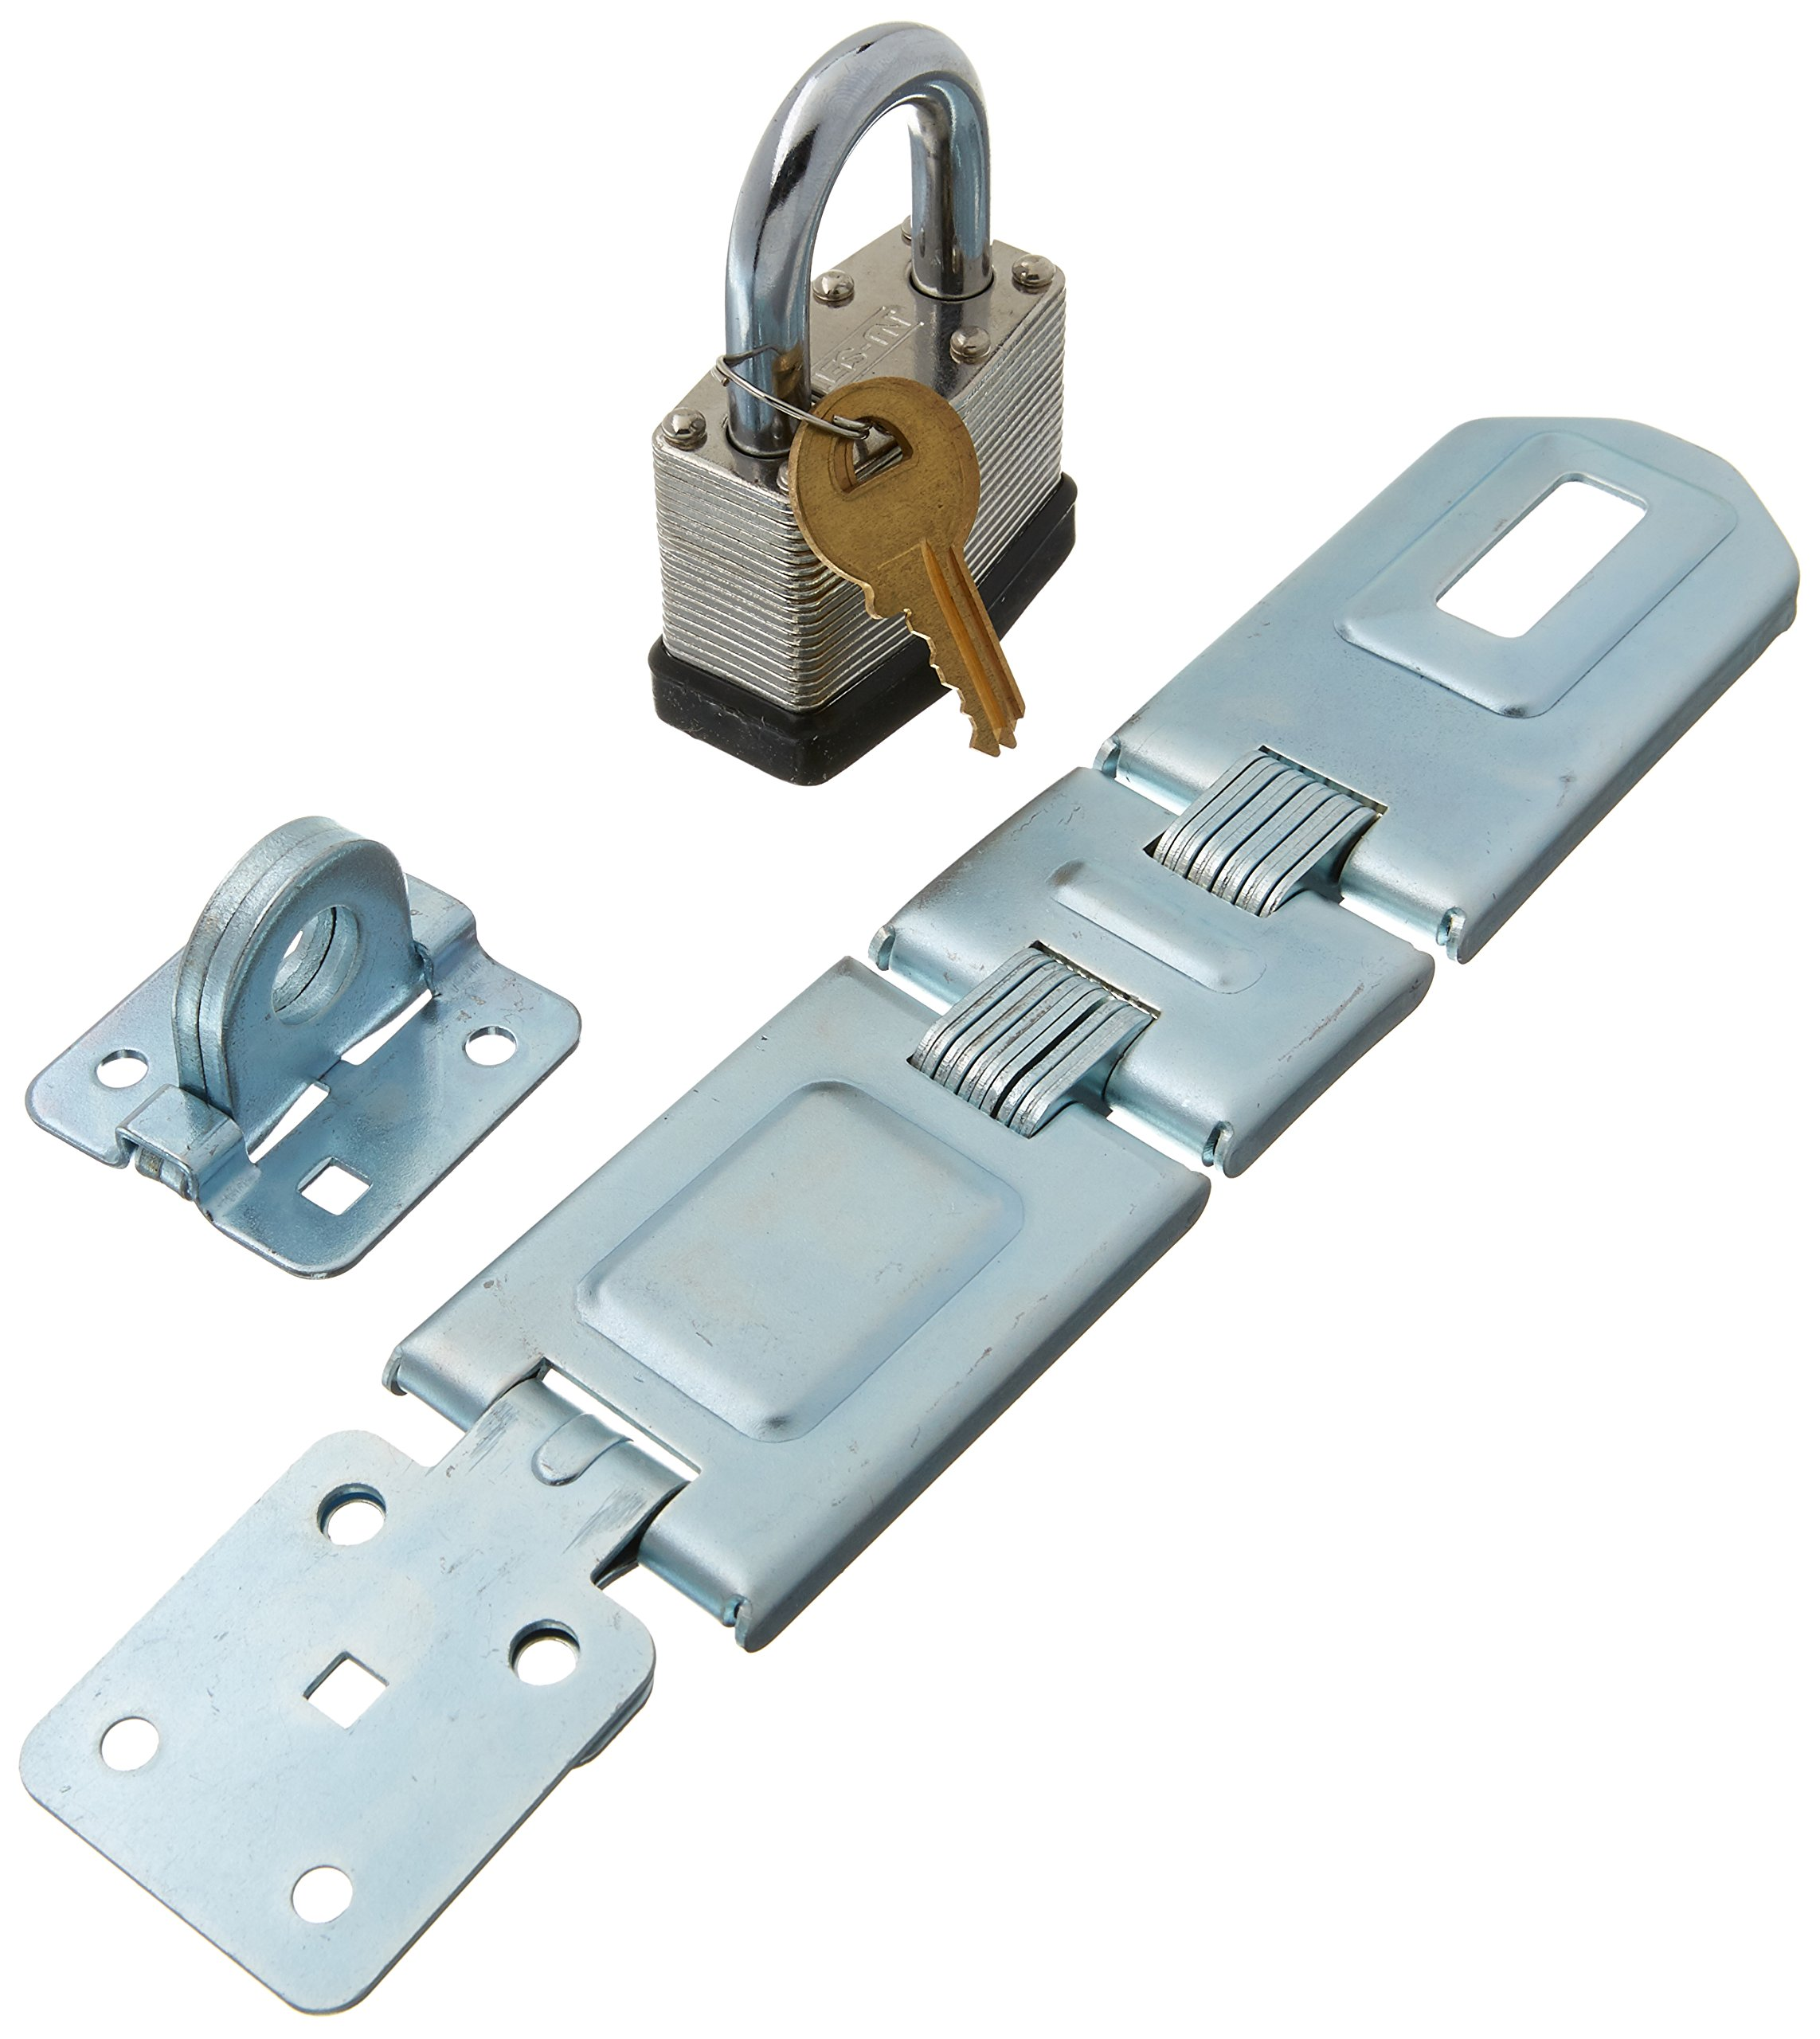 NU-SET 2703+5262 Nuset 7-1/2 Double-Hing Hasp with One Laminated Steel Padlock